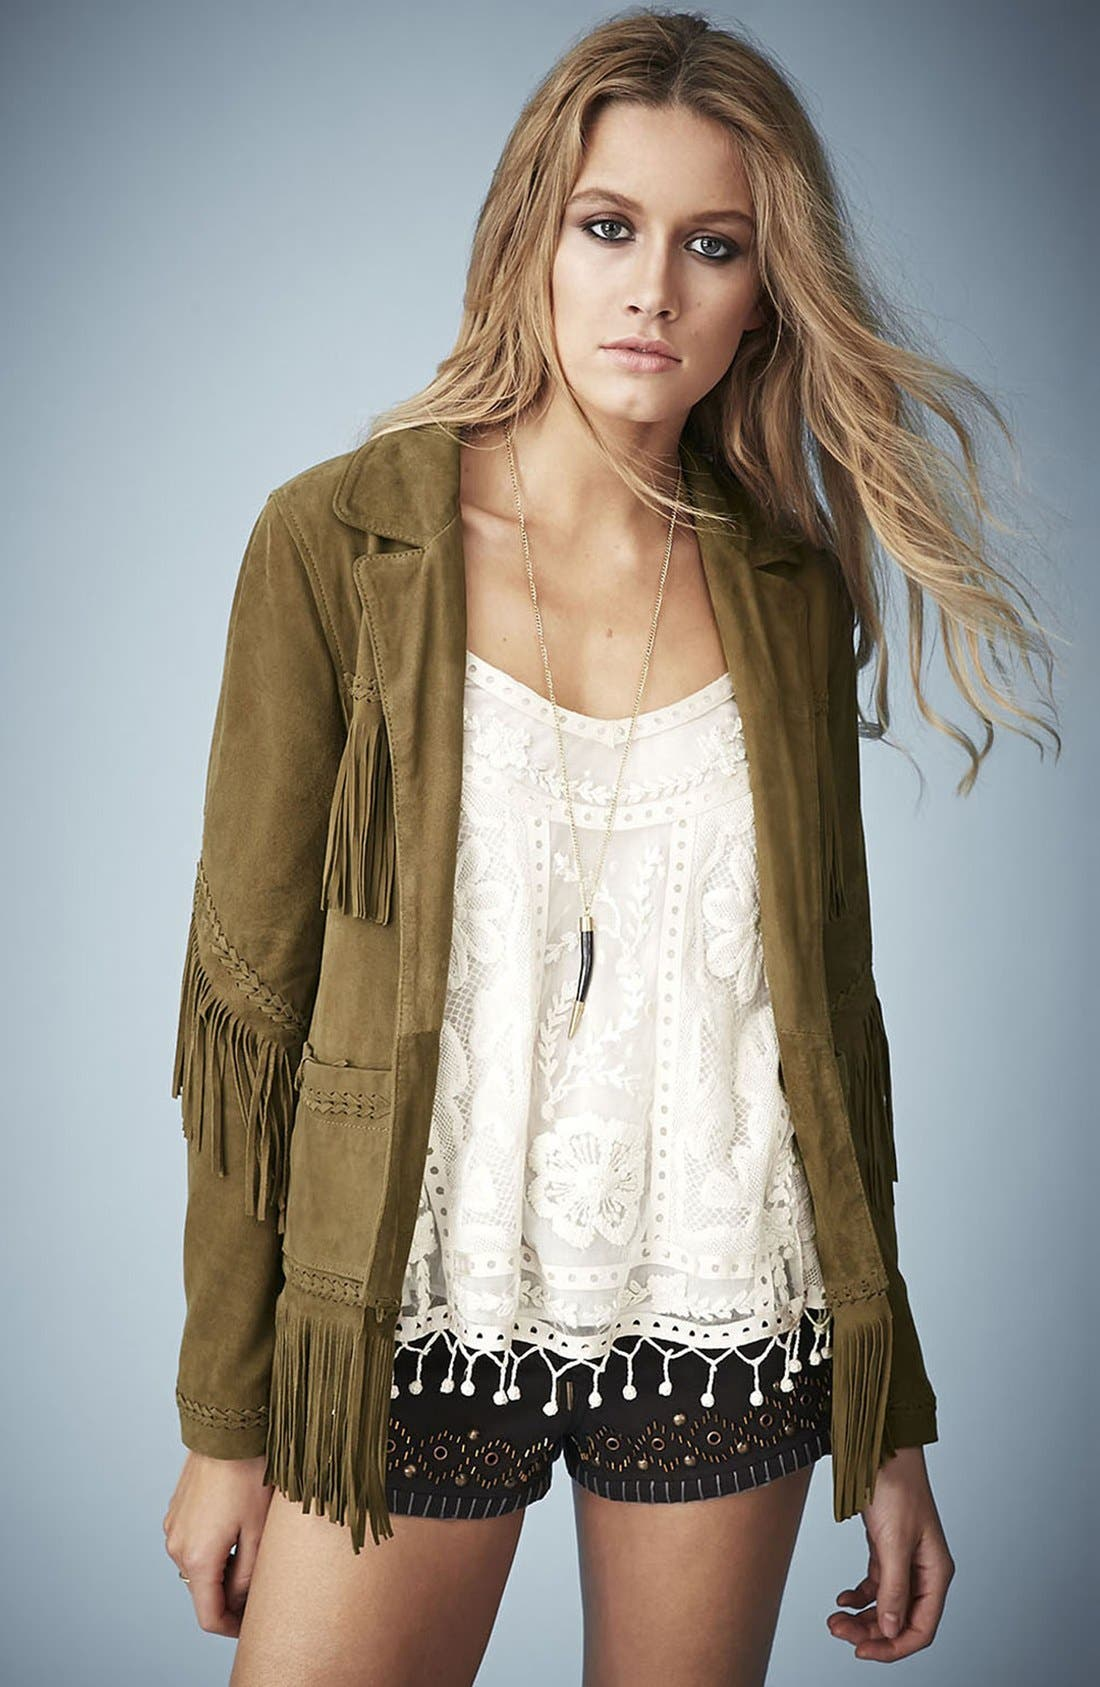 Main Image - Kate Moss for Topshop Fringed Suede Jacket